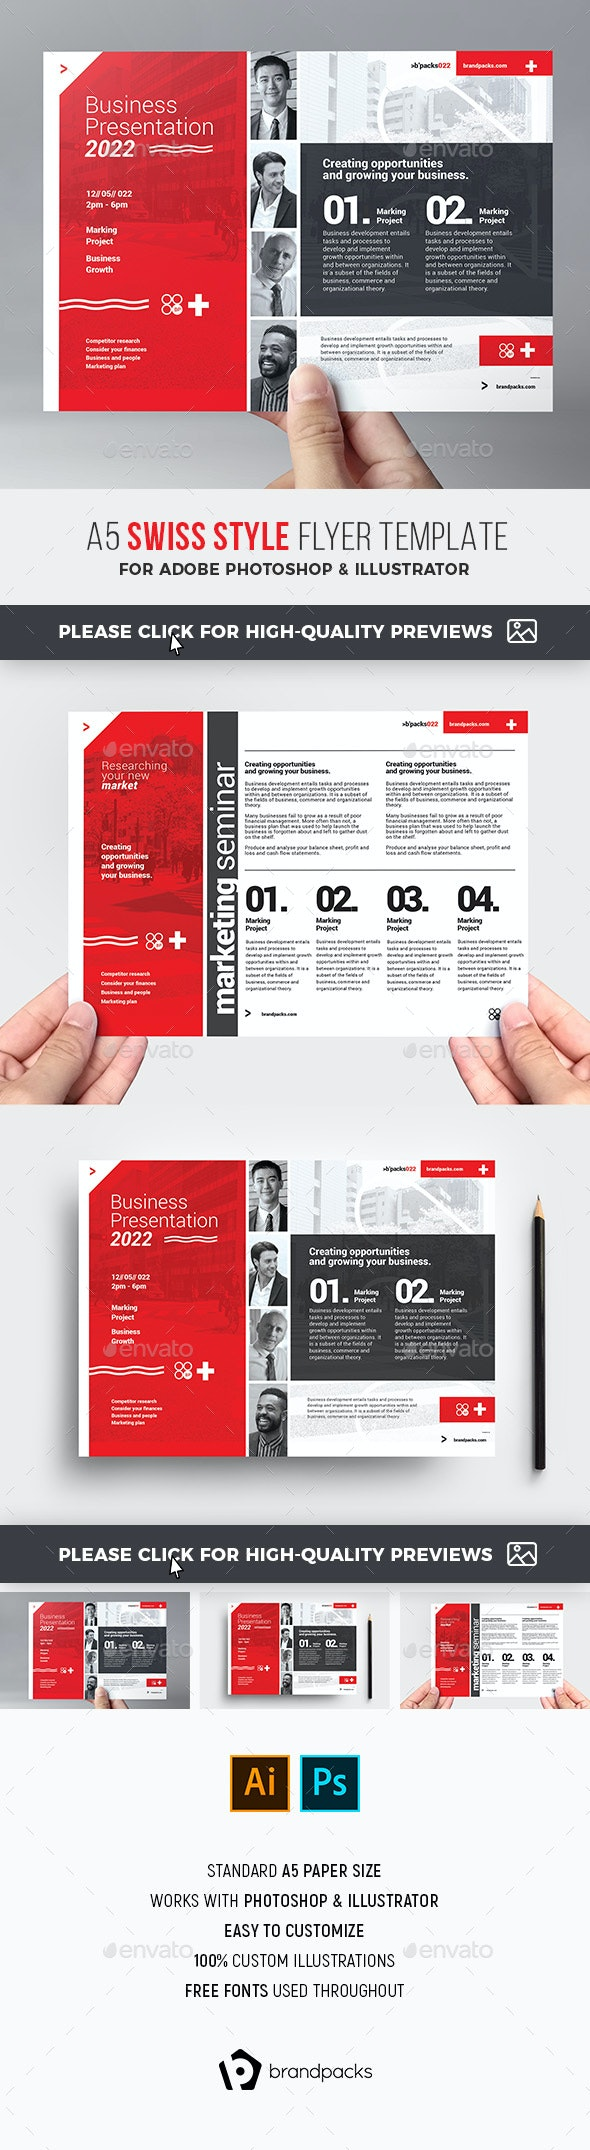 Swiss Style Corporate Flyer Template - Corporate Flyers